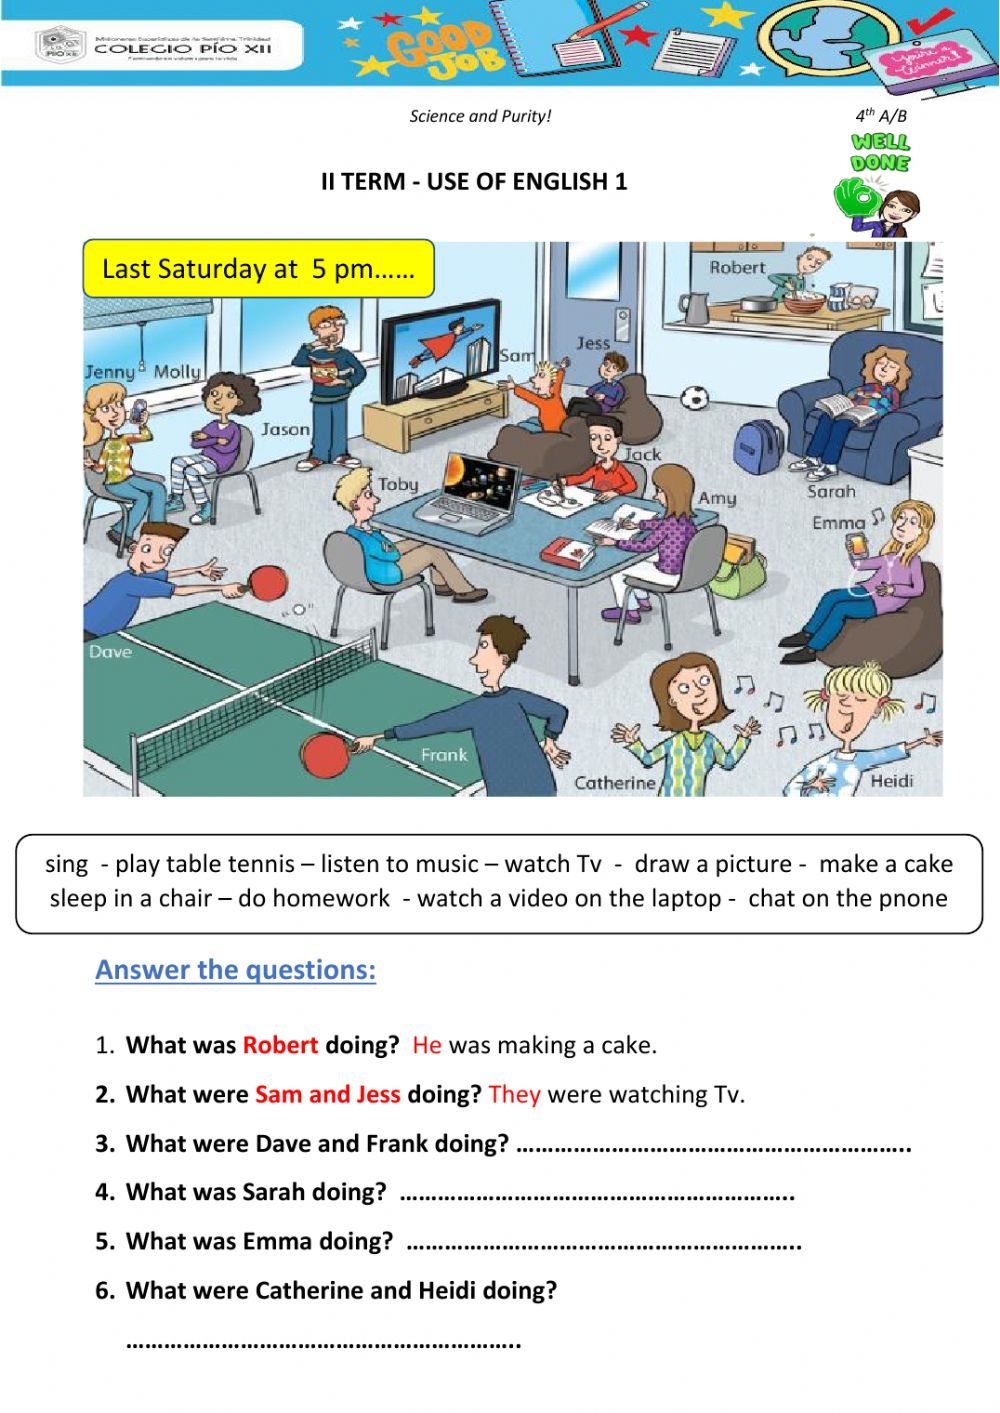 Past continuous online worksheet for 4th grade Primary. You can do the  exerc…   Reading comprehension kindergarten [ 1413 x 1000 Pixel ]